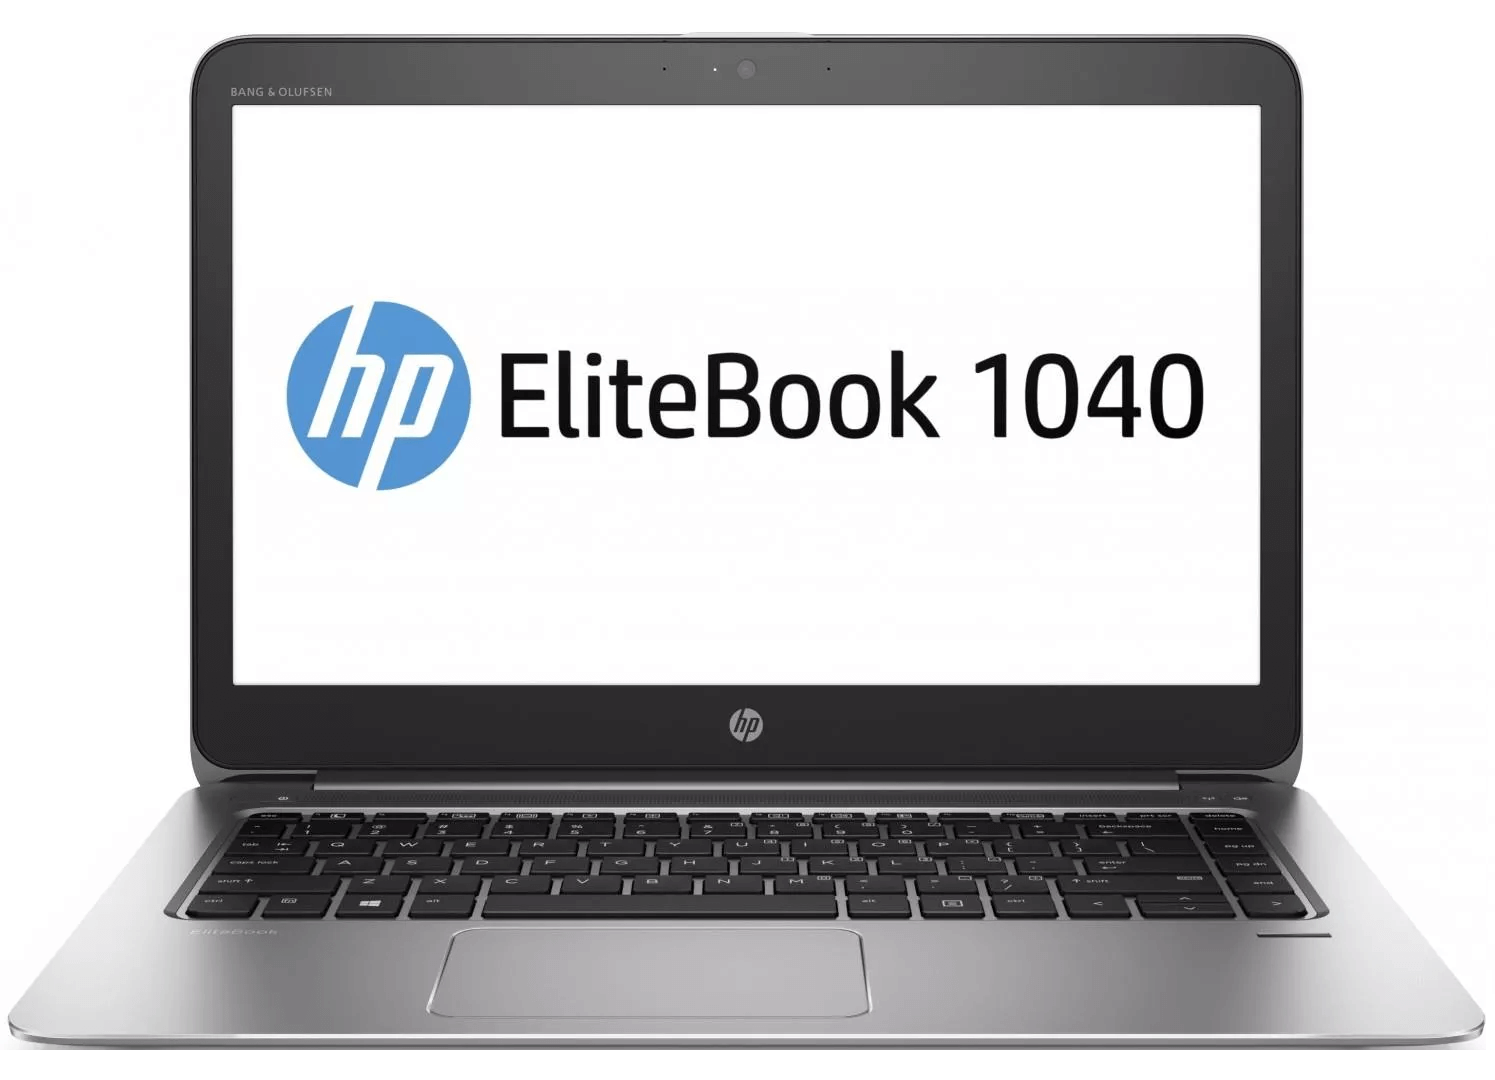 HP ELITEBOOK FOLIO 1040 G3 I5-6300U 2.4 / 16384 MB DDR4 / 256 GB SSD M.2 / WINDOWS 10 PRO / 14